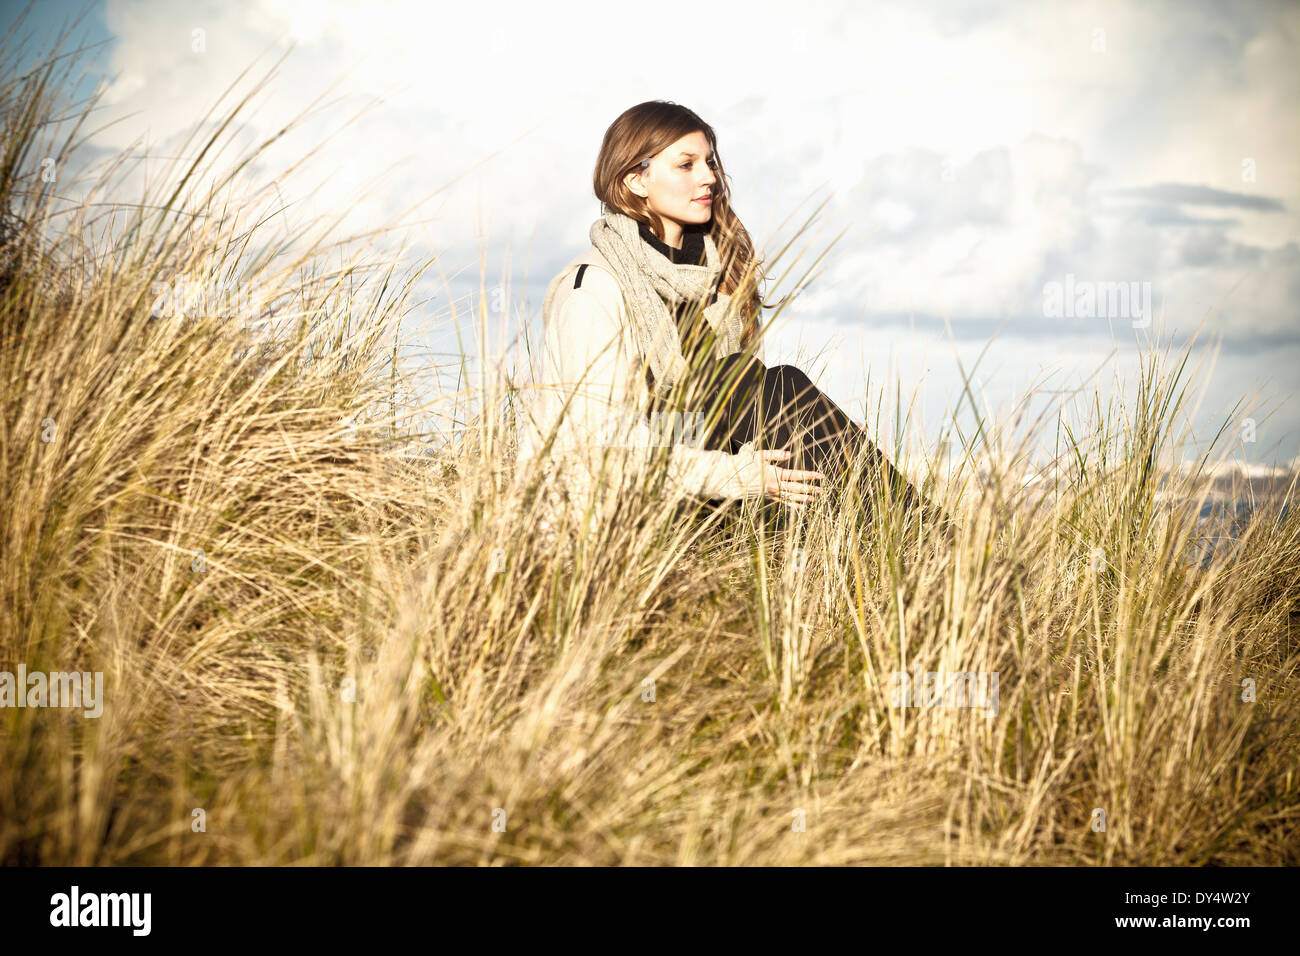 Young woman sitting in sand dunes, Bournemouth, Dorset, UK - Stock Image